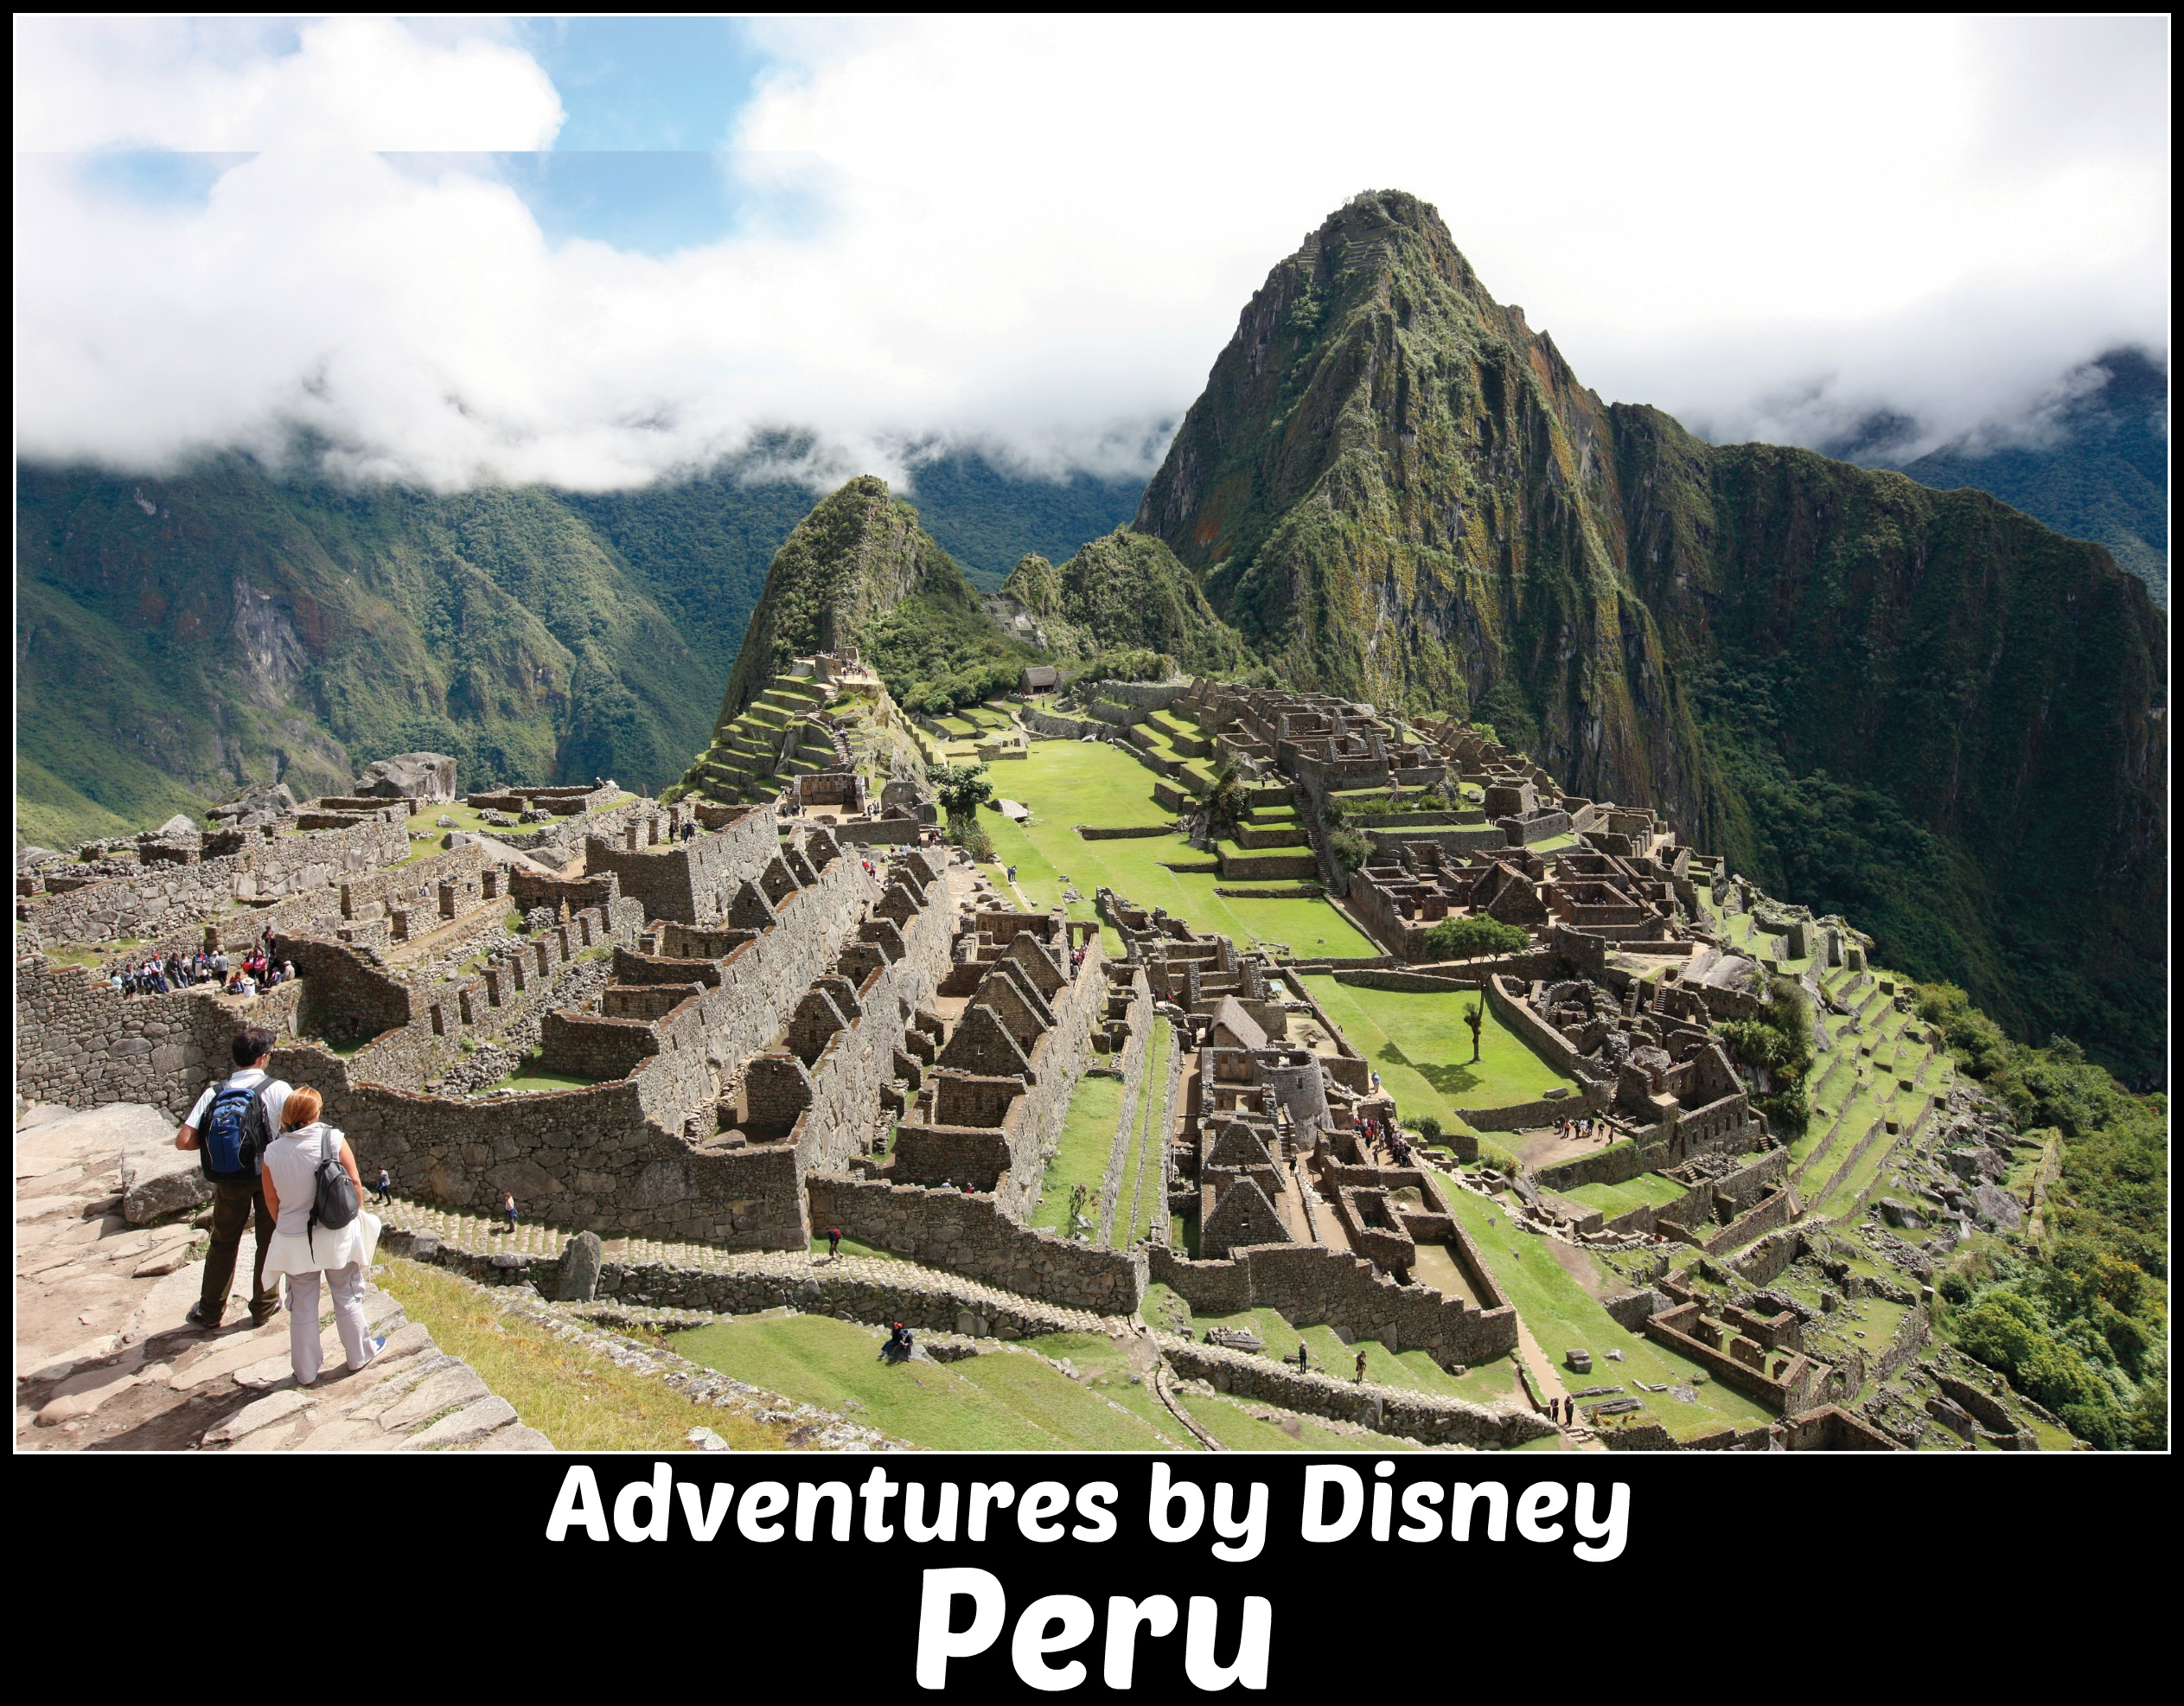 Adventures by Disney Peru guided tour vacation